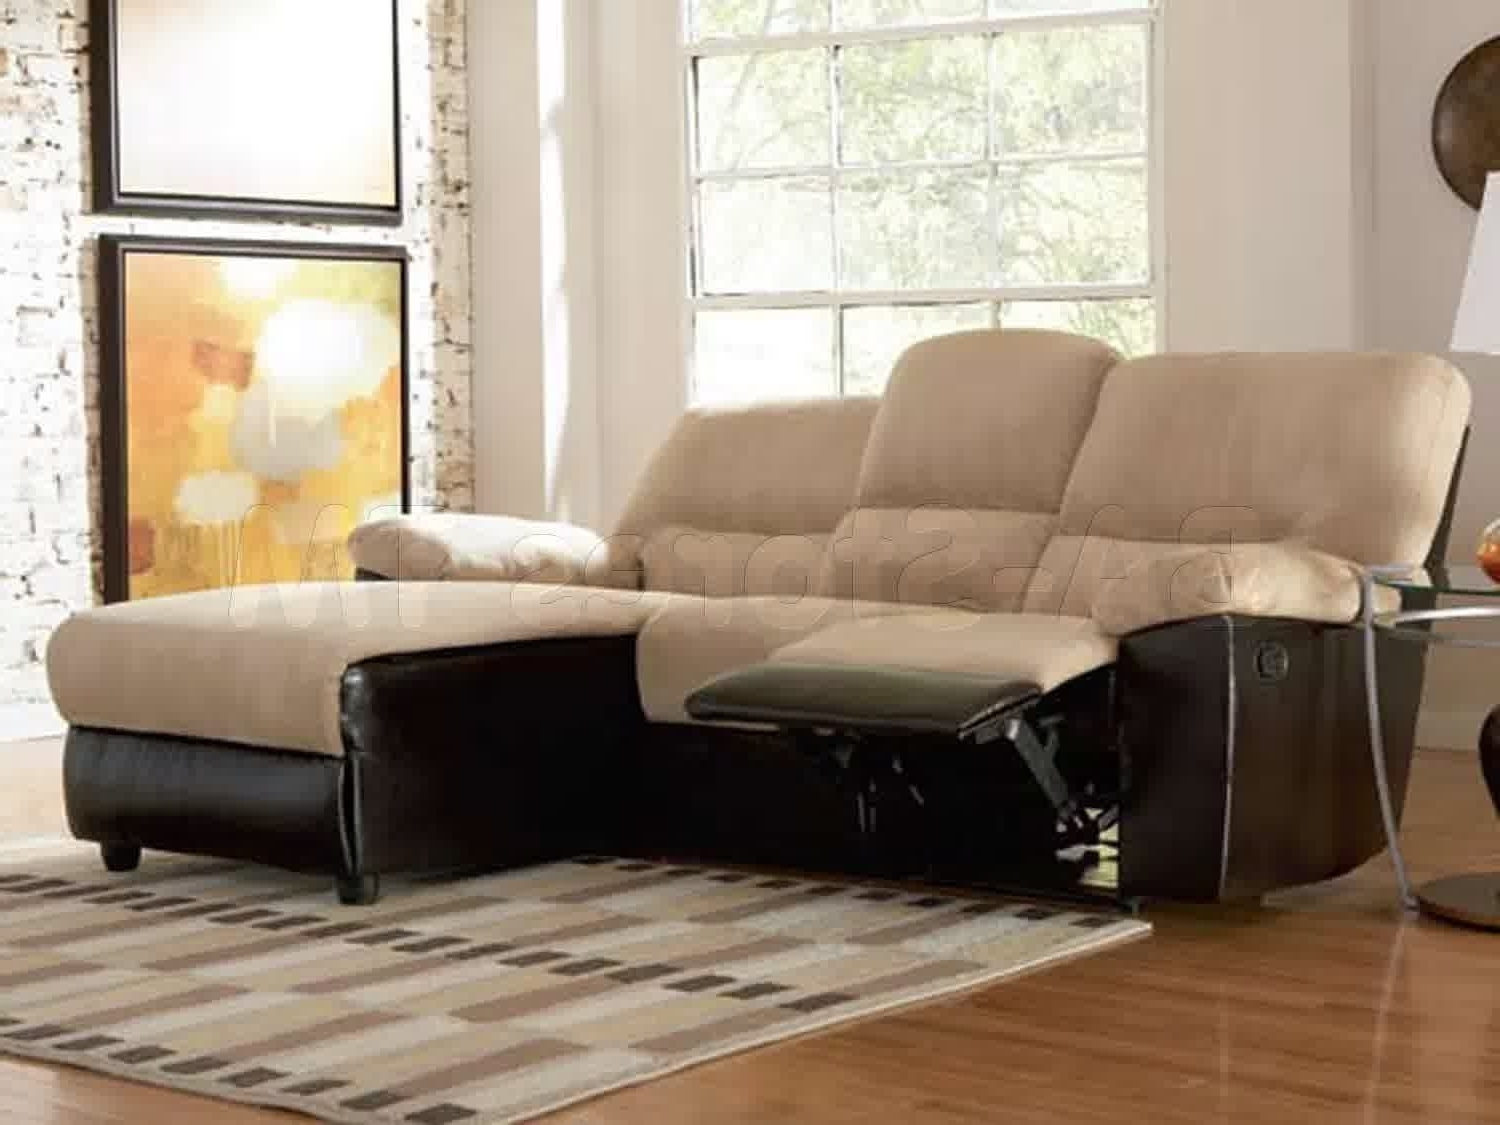 Vaughn Apartment Sofa Apartment Size Sofa Ikea Small Spaces Studio intended for Most Current Apartment Size Sectionals With Chaise